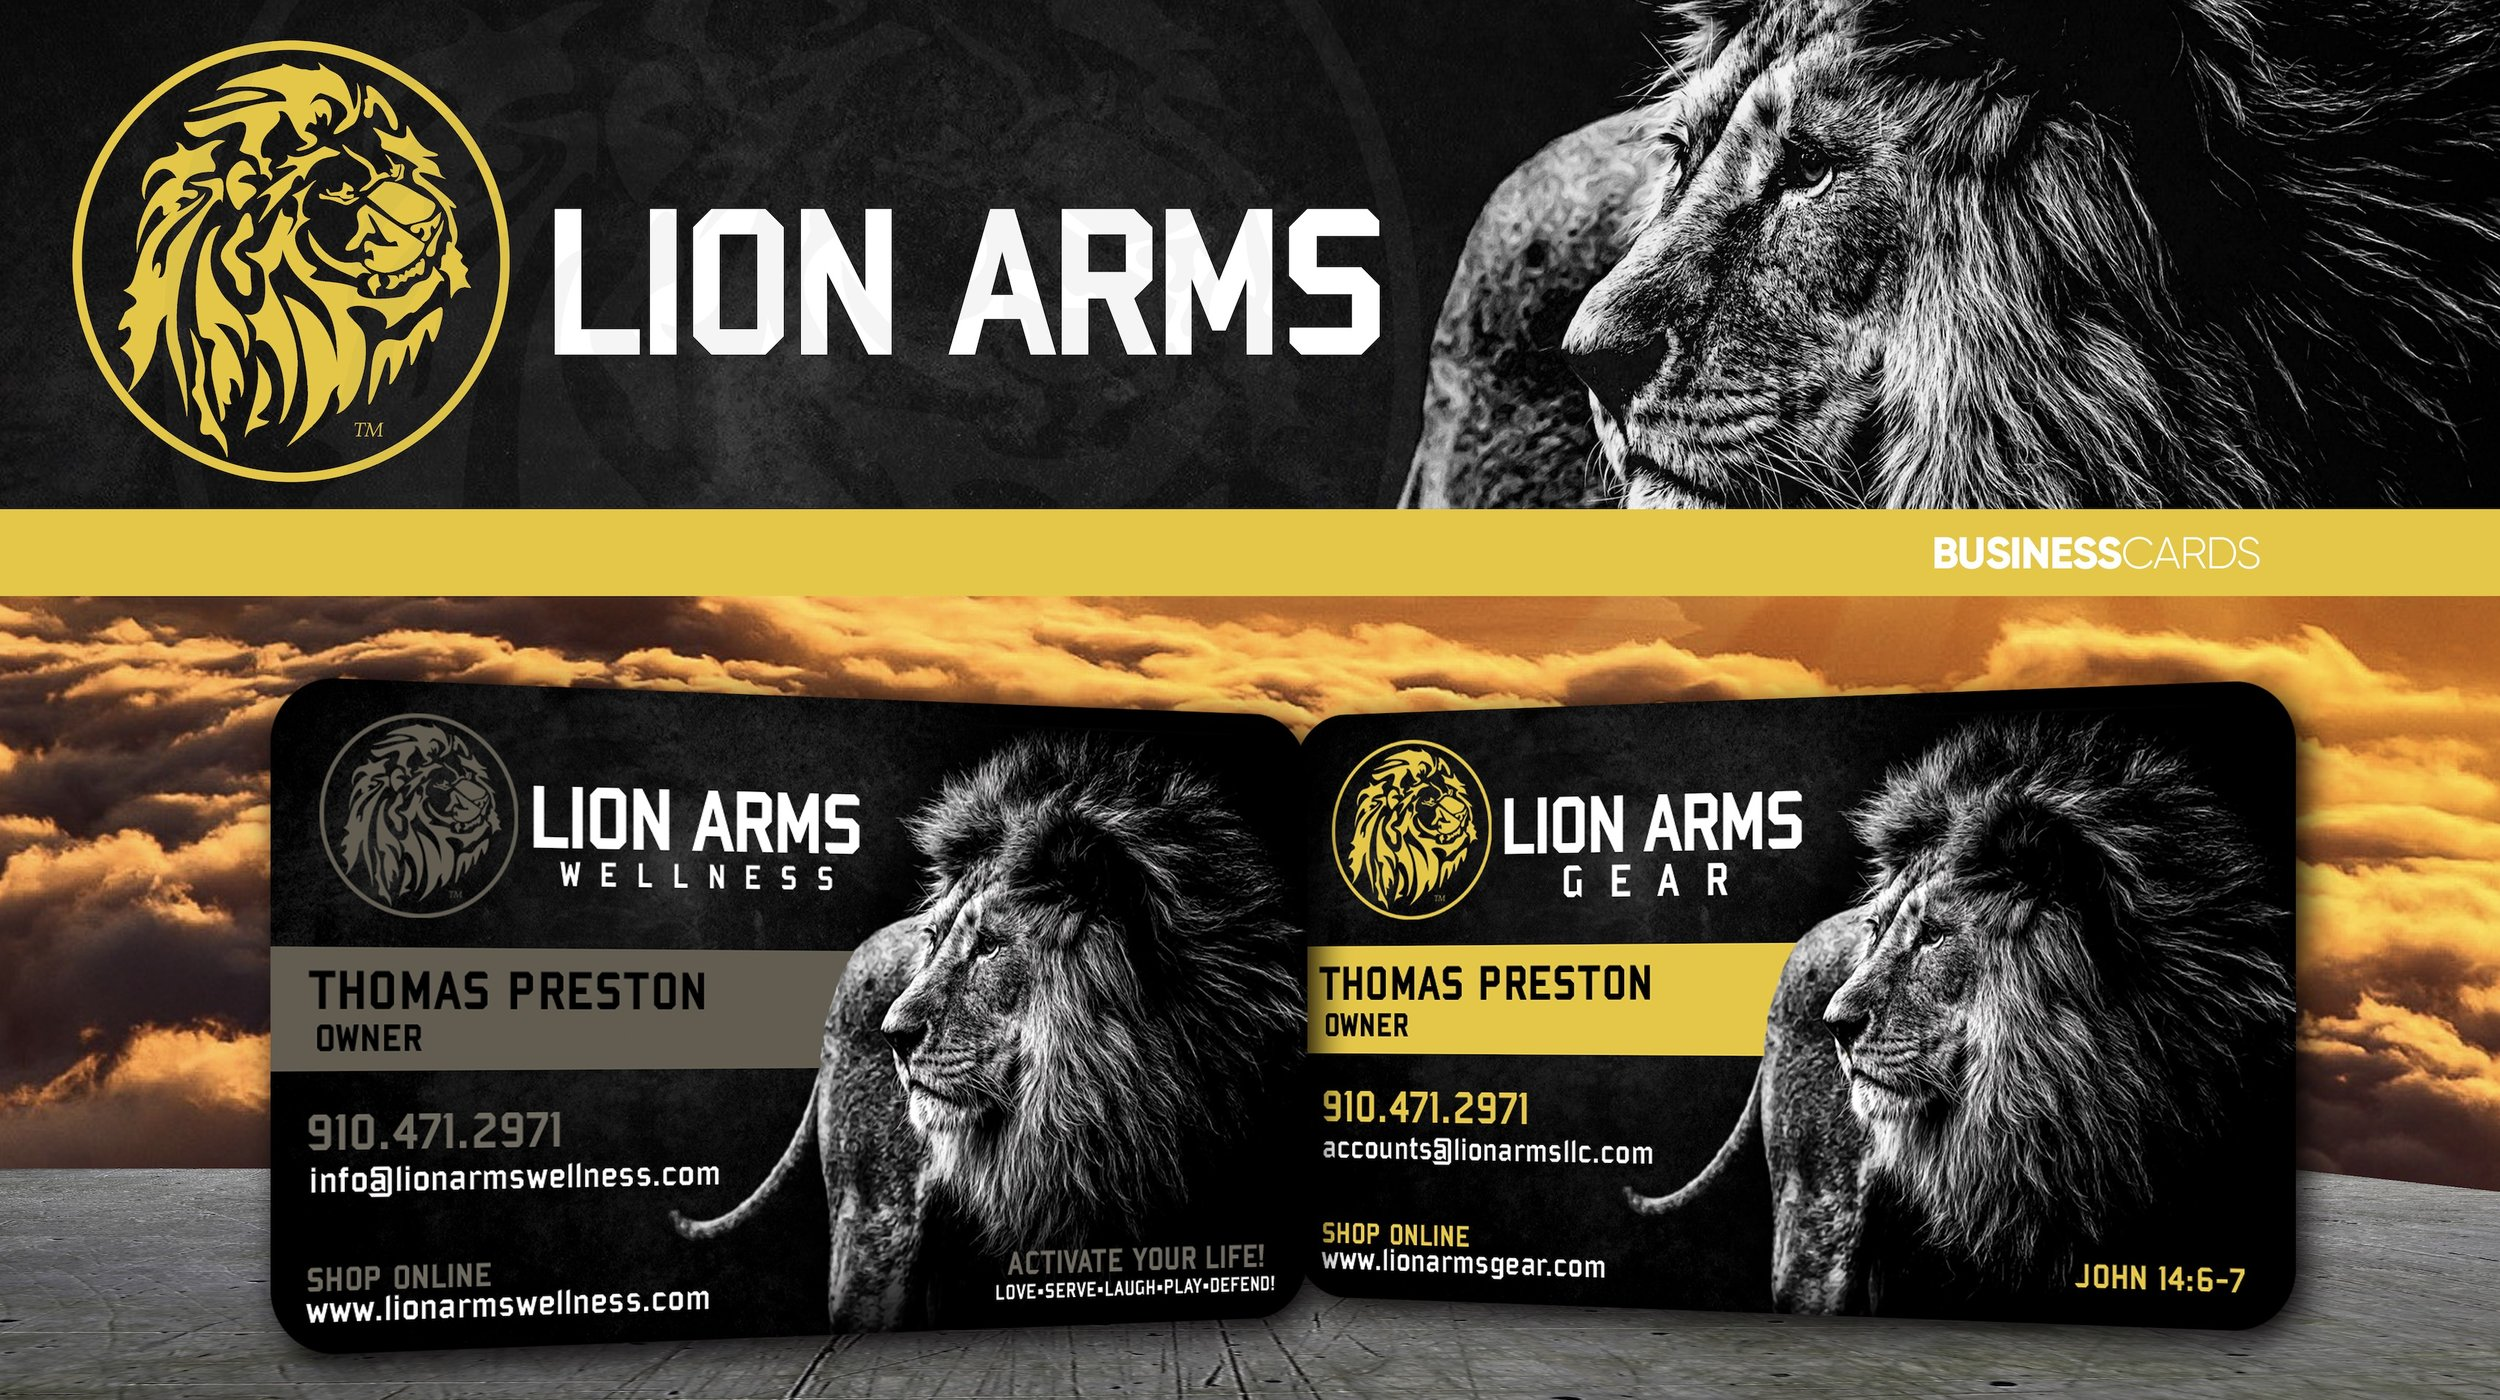 Business card project for Lion Arms, LLC. Cards were printed on 16pt Velvet cardstock with rounded corners.